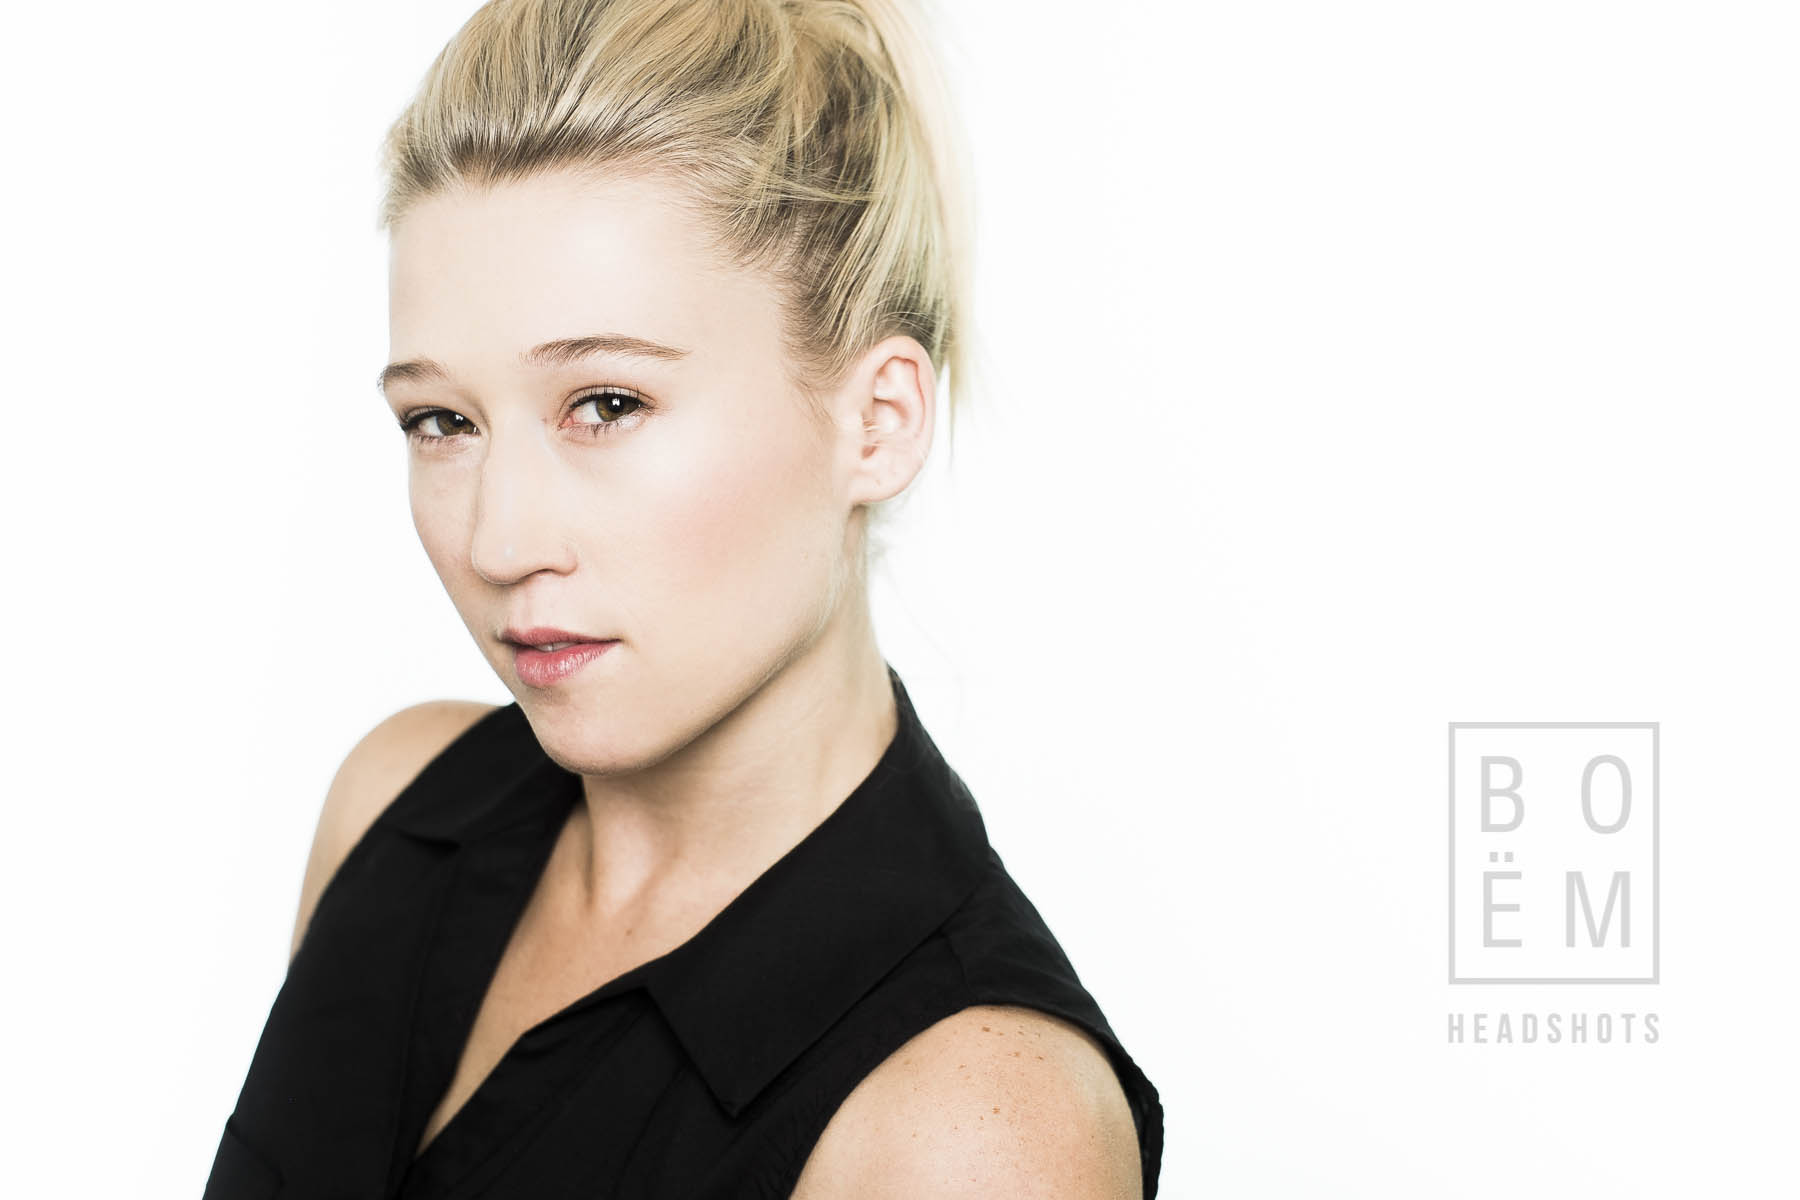 A preview of my session with Justine today, she's a dancer/teacher and I think we did very well! A headshot session by Andre Goosen for Boem Headshots in Adelaide.